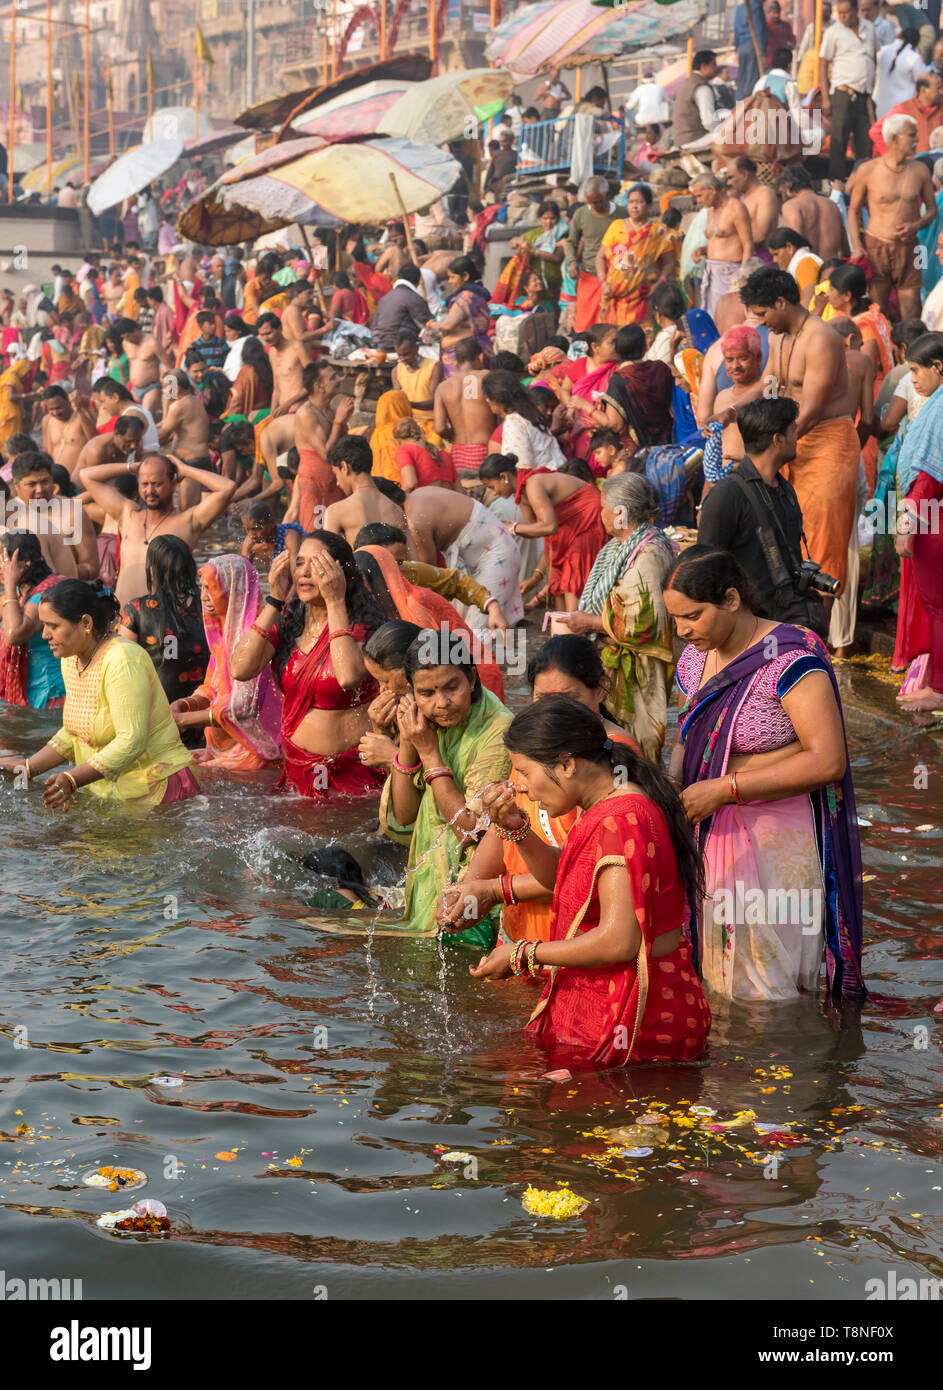 Hindu worshippers perform ritual bath and puja prayers in